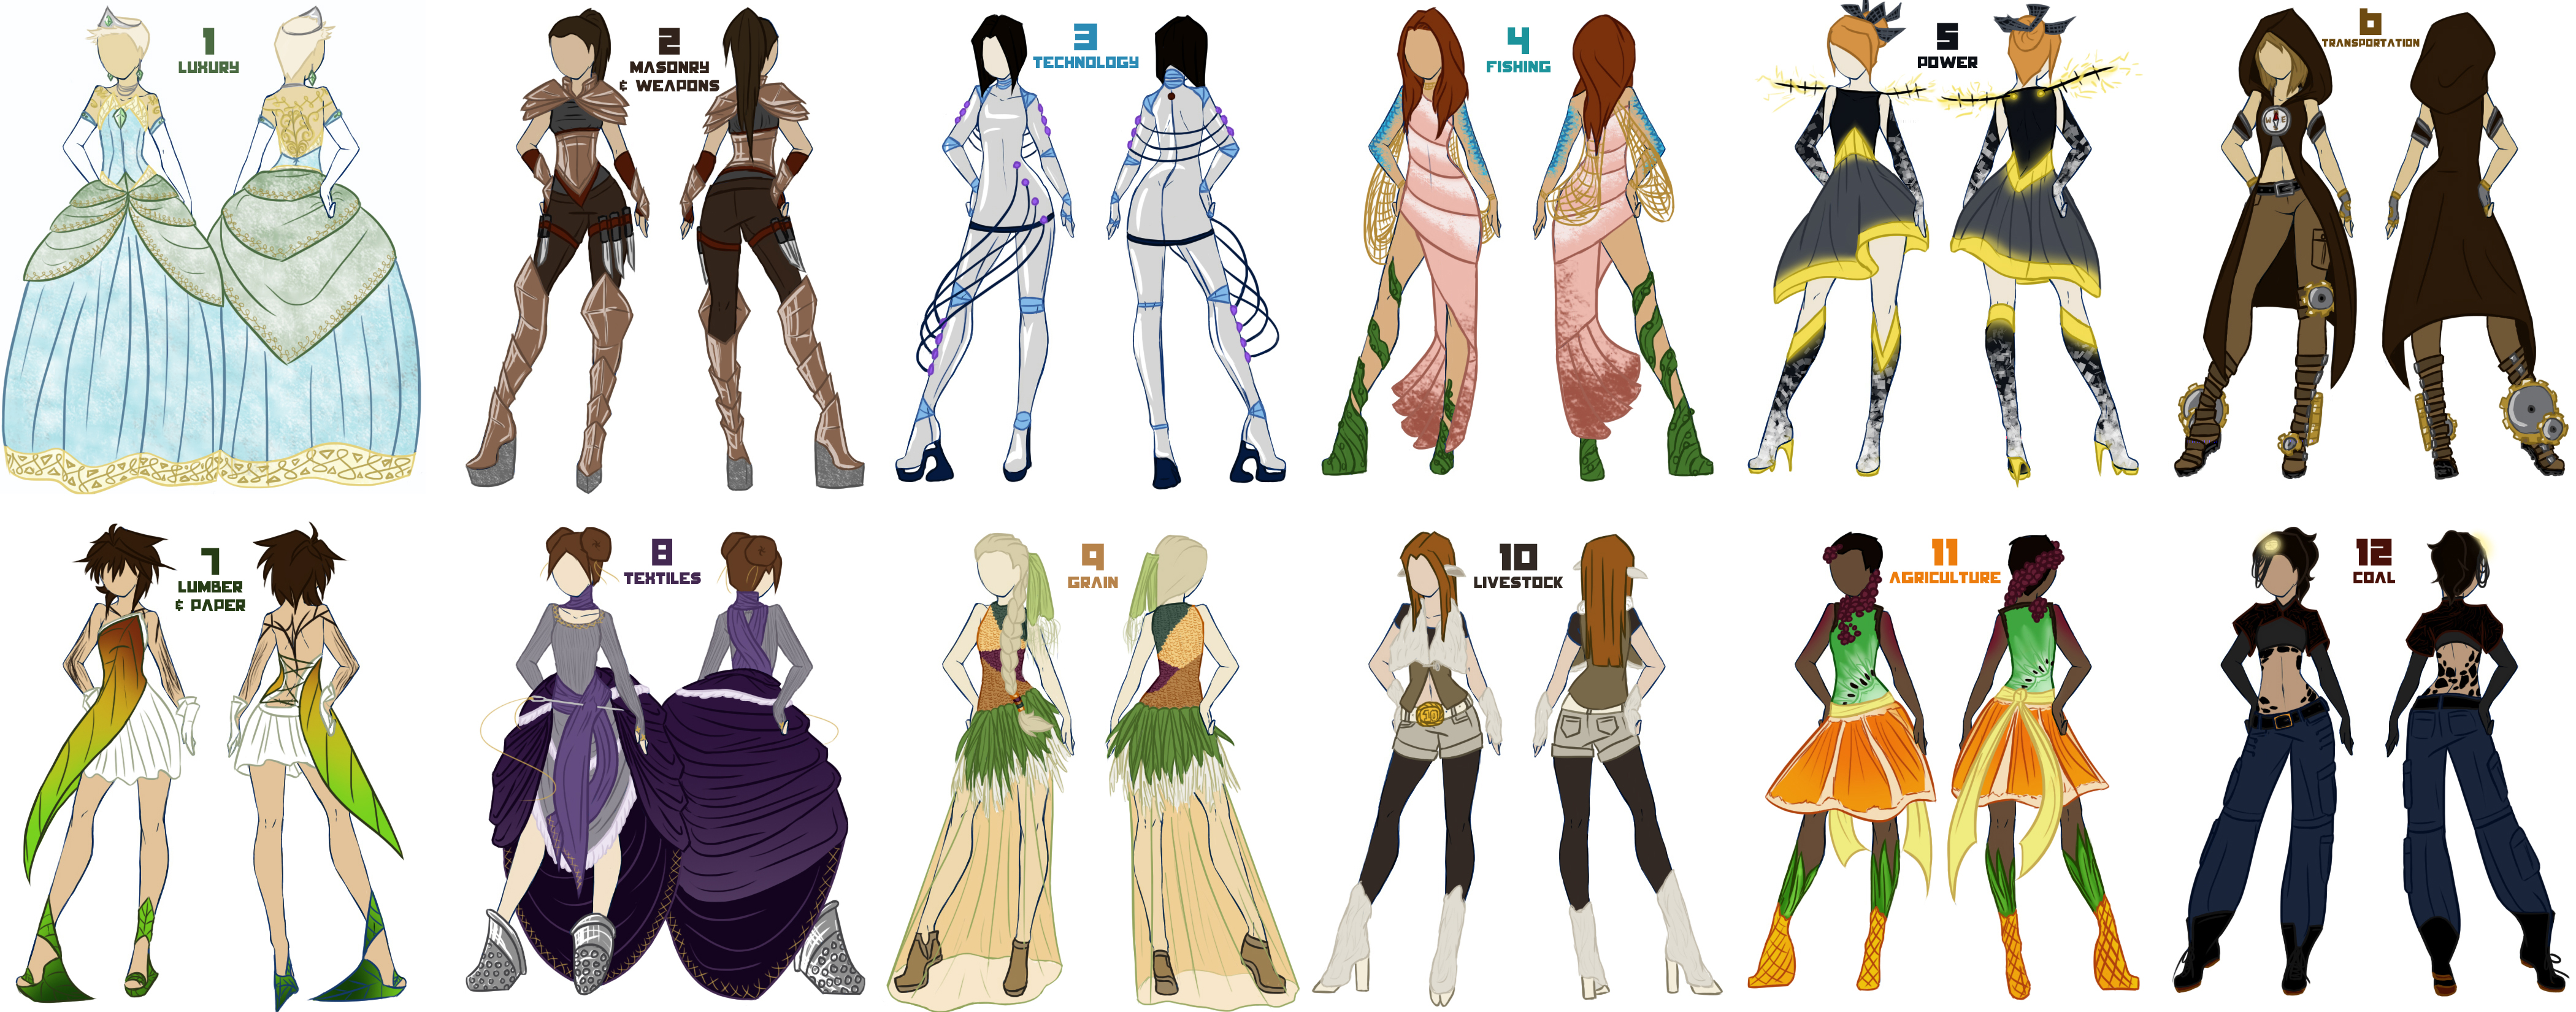 Female Tribute Parade Outfits by evanesce24